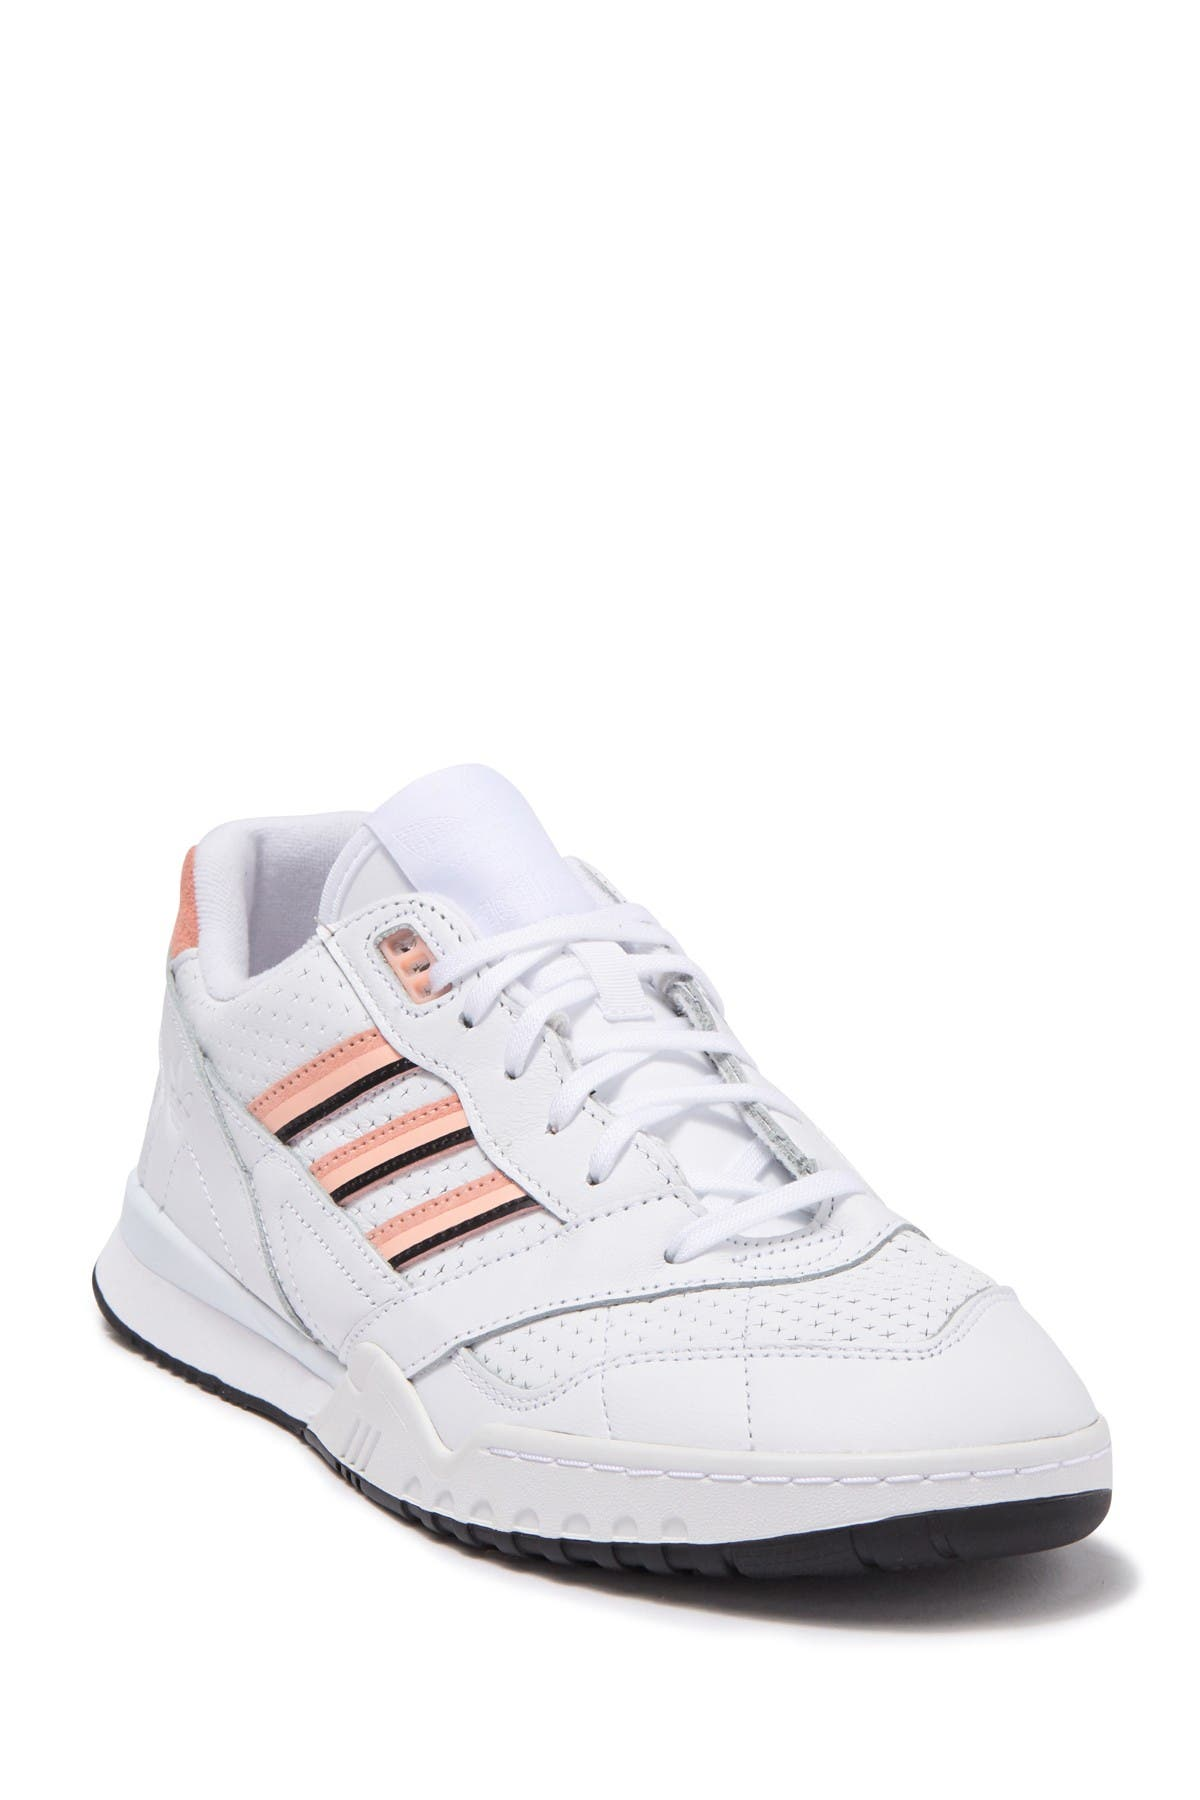 Image of adidas AR Trainer Sneaker